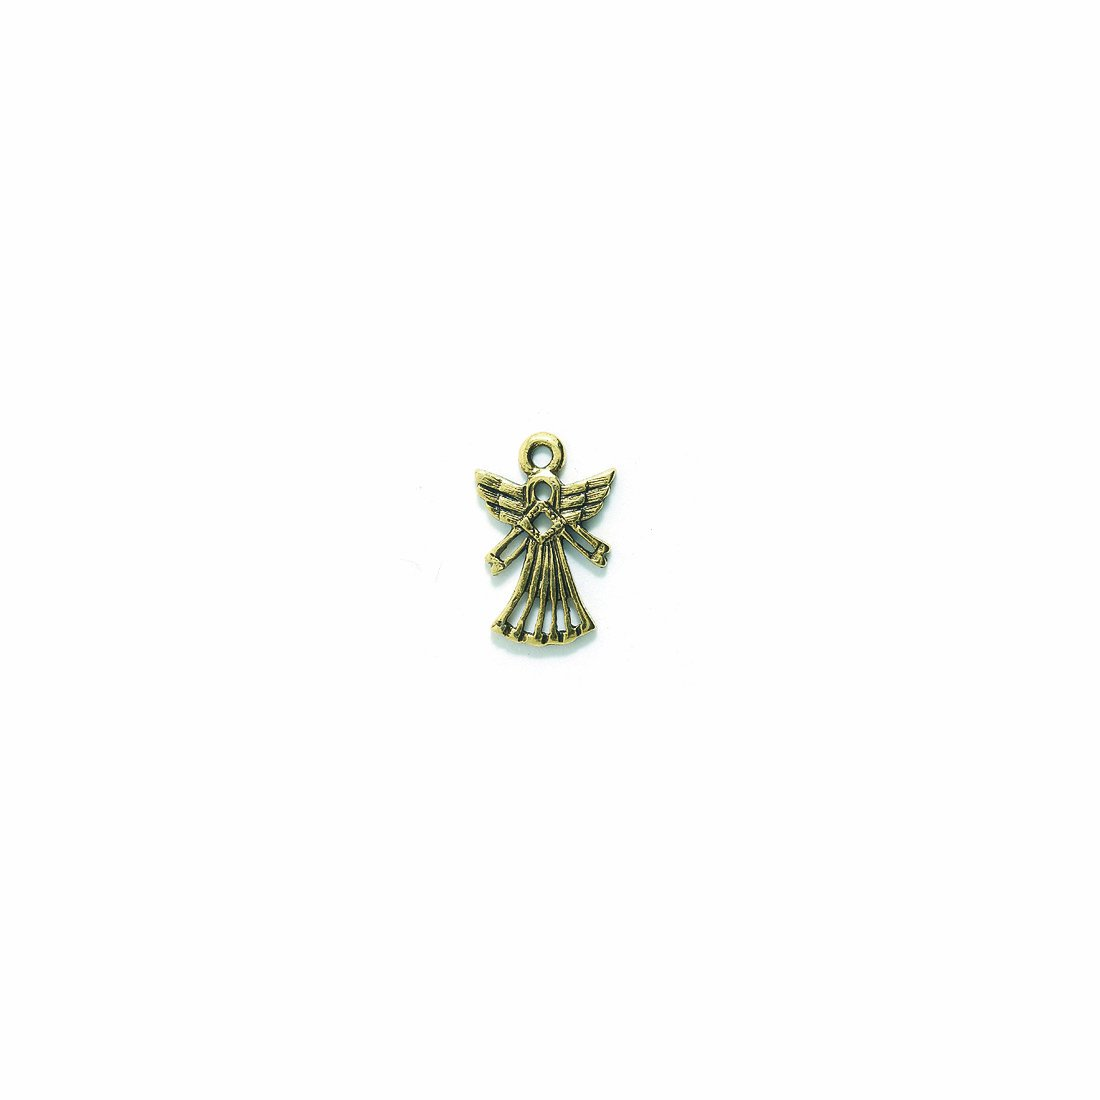 Shipwreck Beads Pewter Angel Charm, Metallic, Antique Gold, 13 by 19mm, 8-Piece PW5582-AG